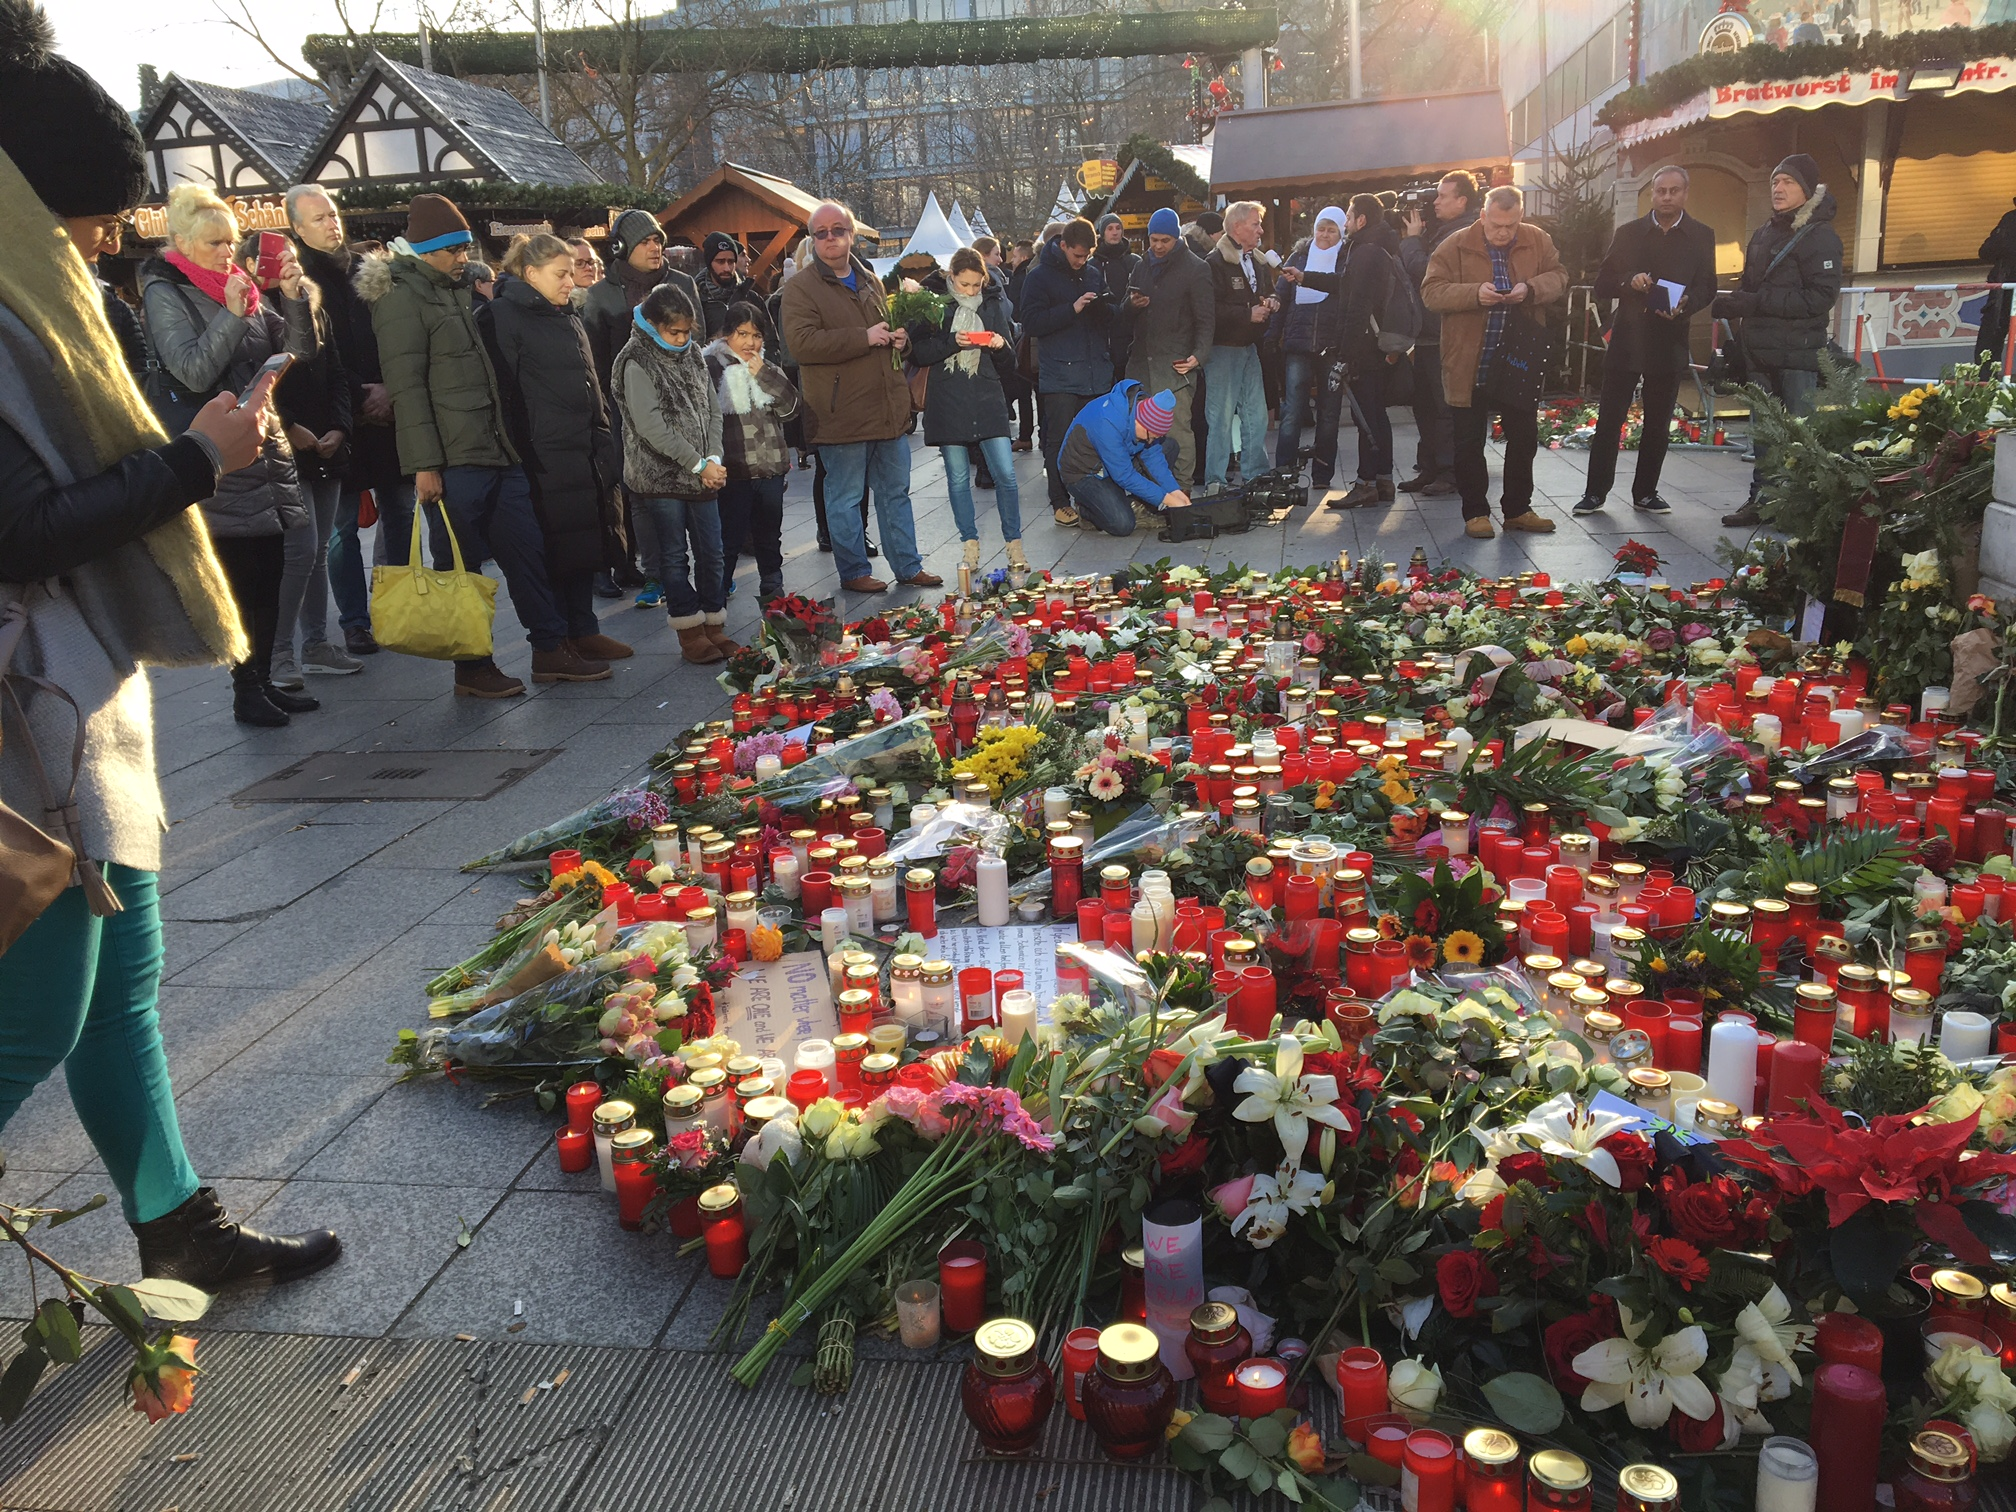 Visitors to the Christmas Market in Berlin stop at a shrine for the 12 who died in the  terrorist attack